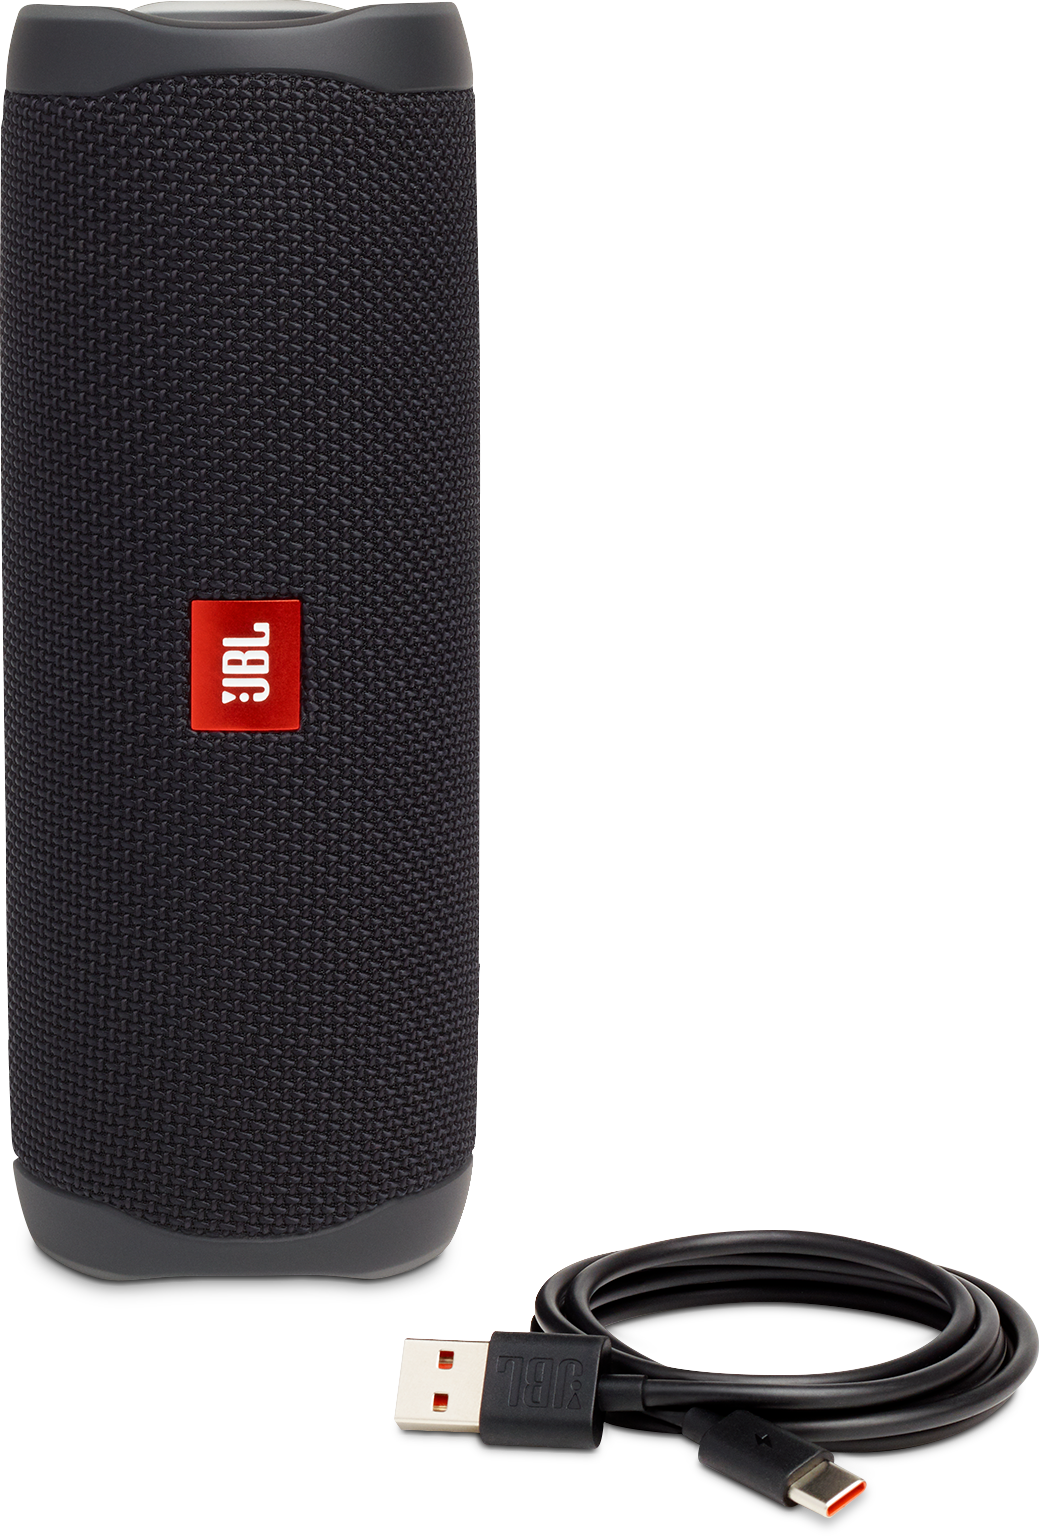 RE3N8Ml?ver=f882 - JBL FLIP5 Portable Waterproof Speaker